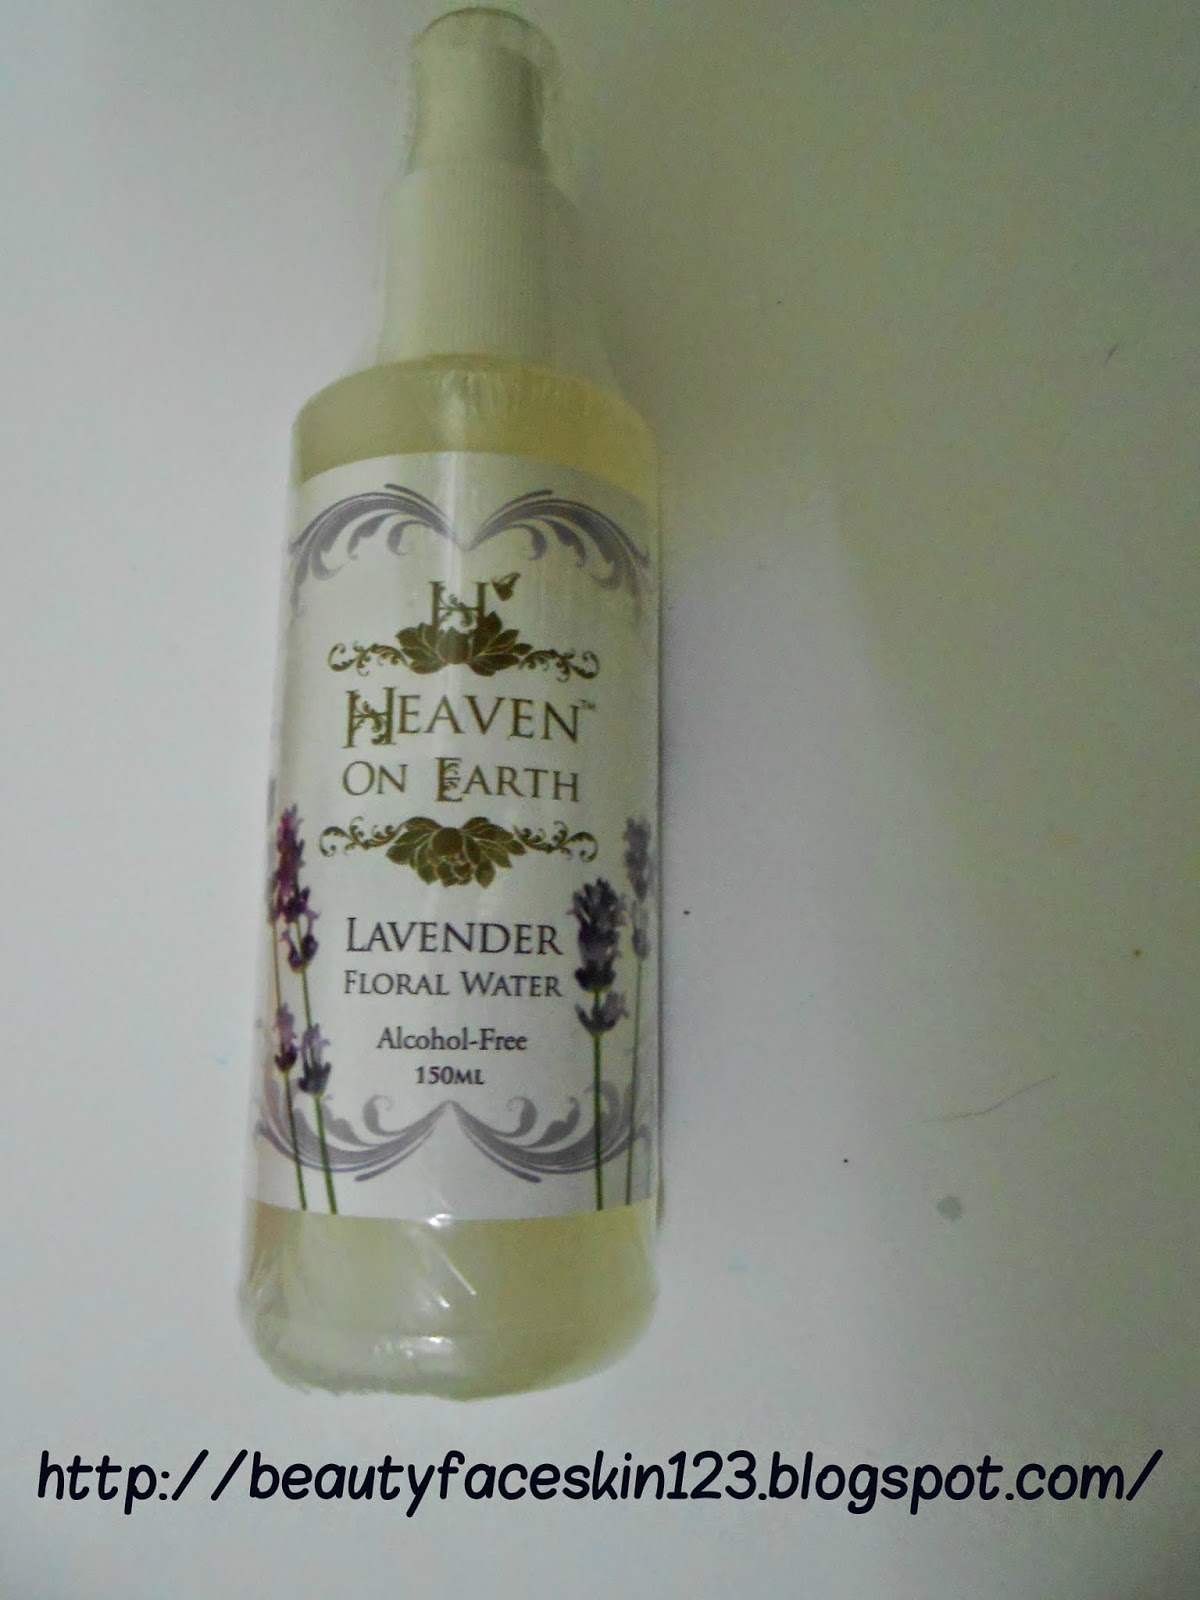 HEAVEN ON EARTH LAVENDER FLORAL WATER